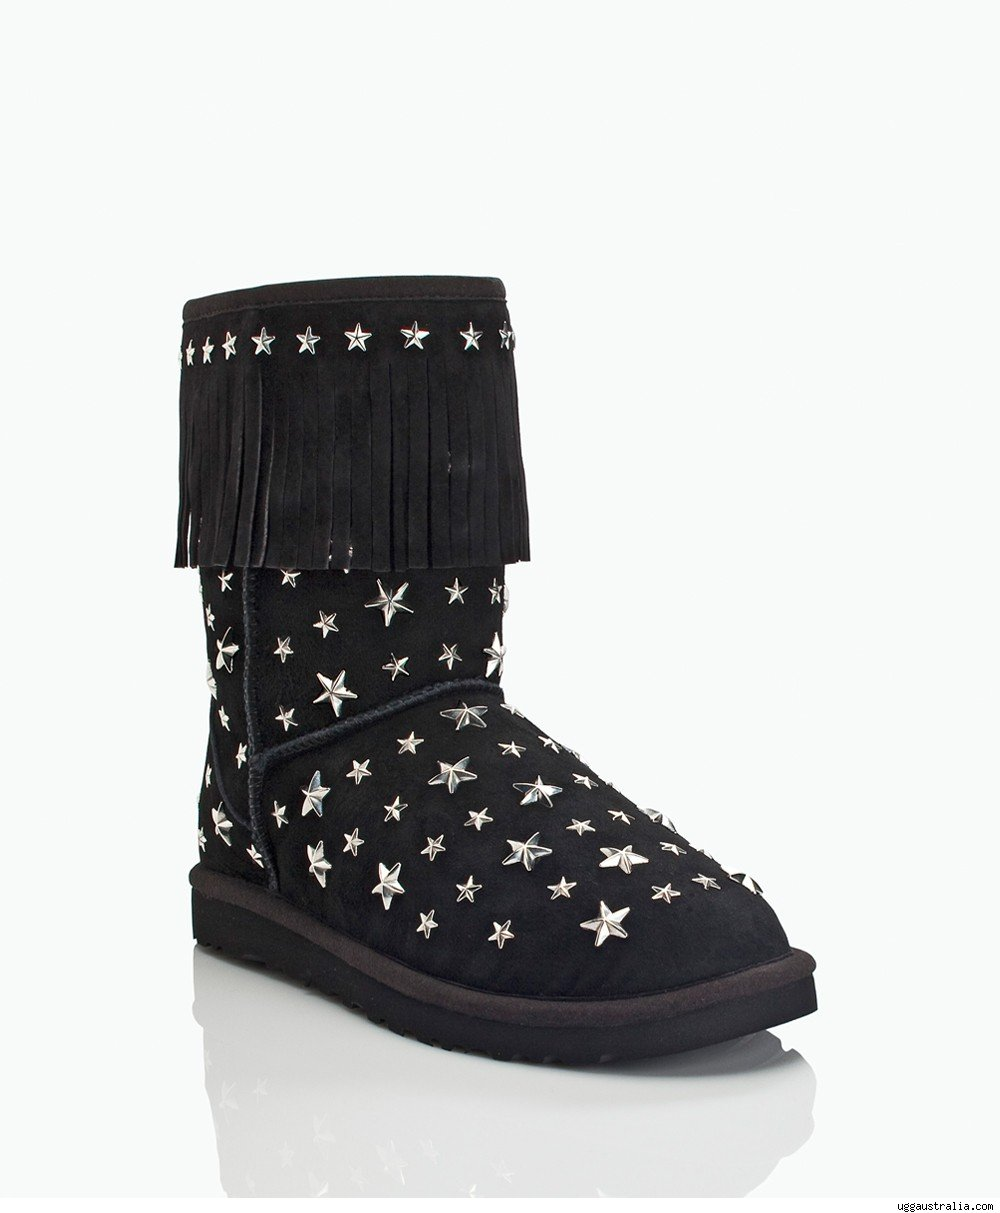 STARLIT (in black)